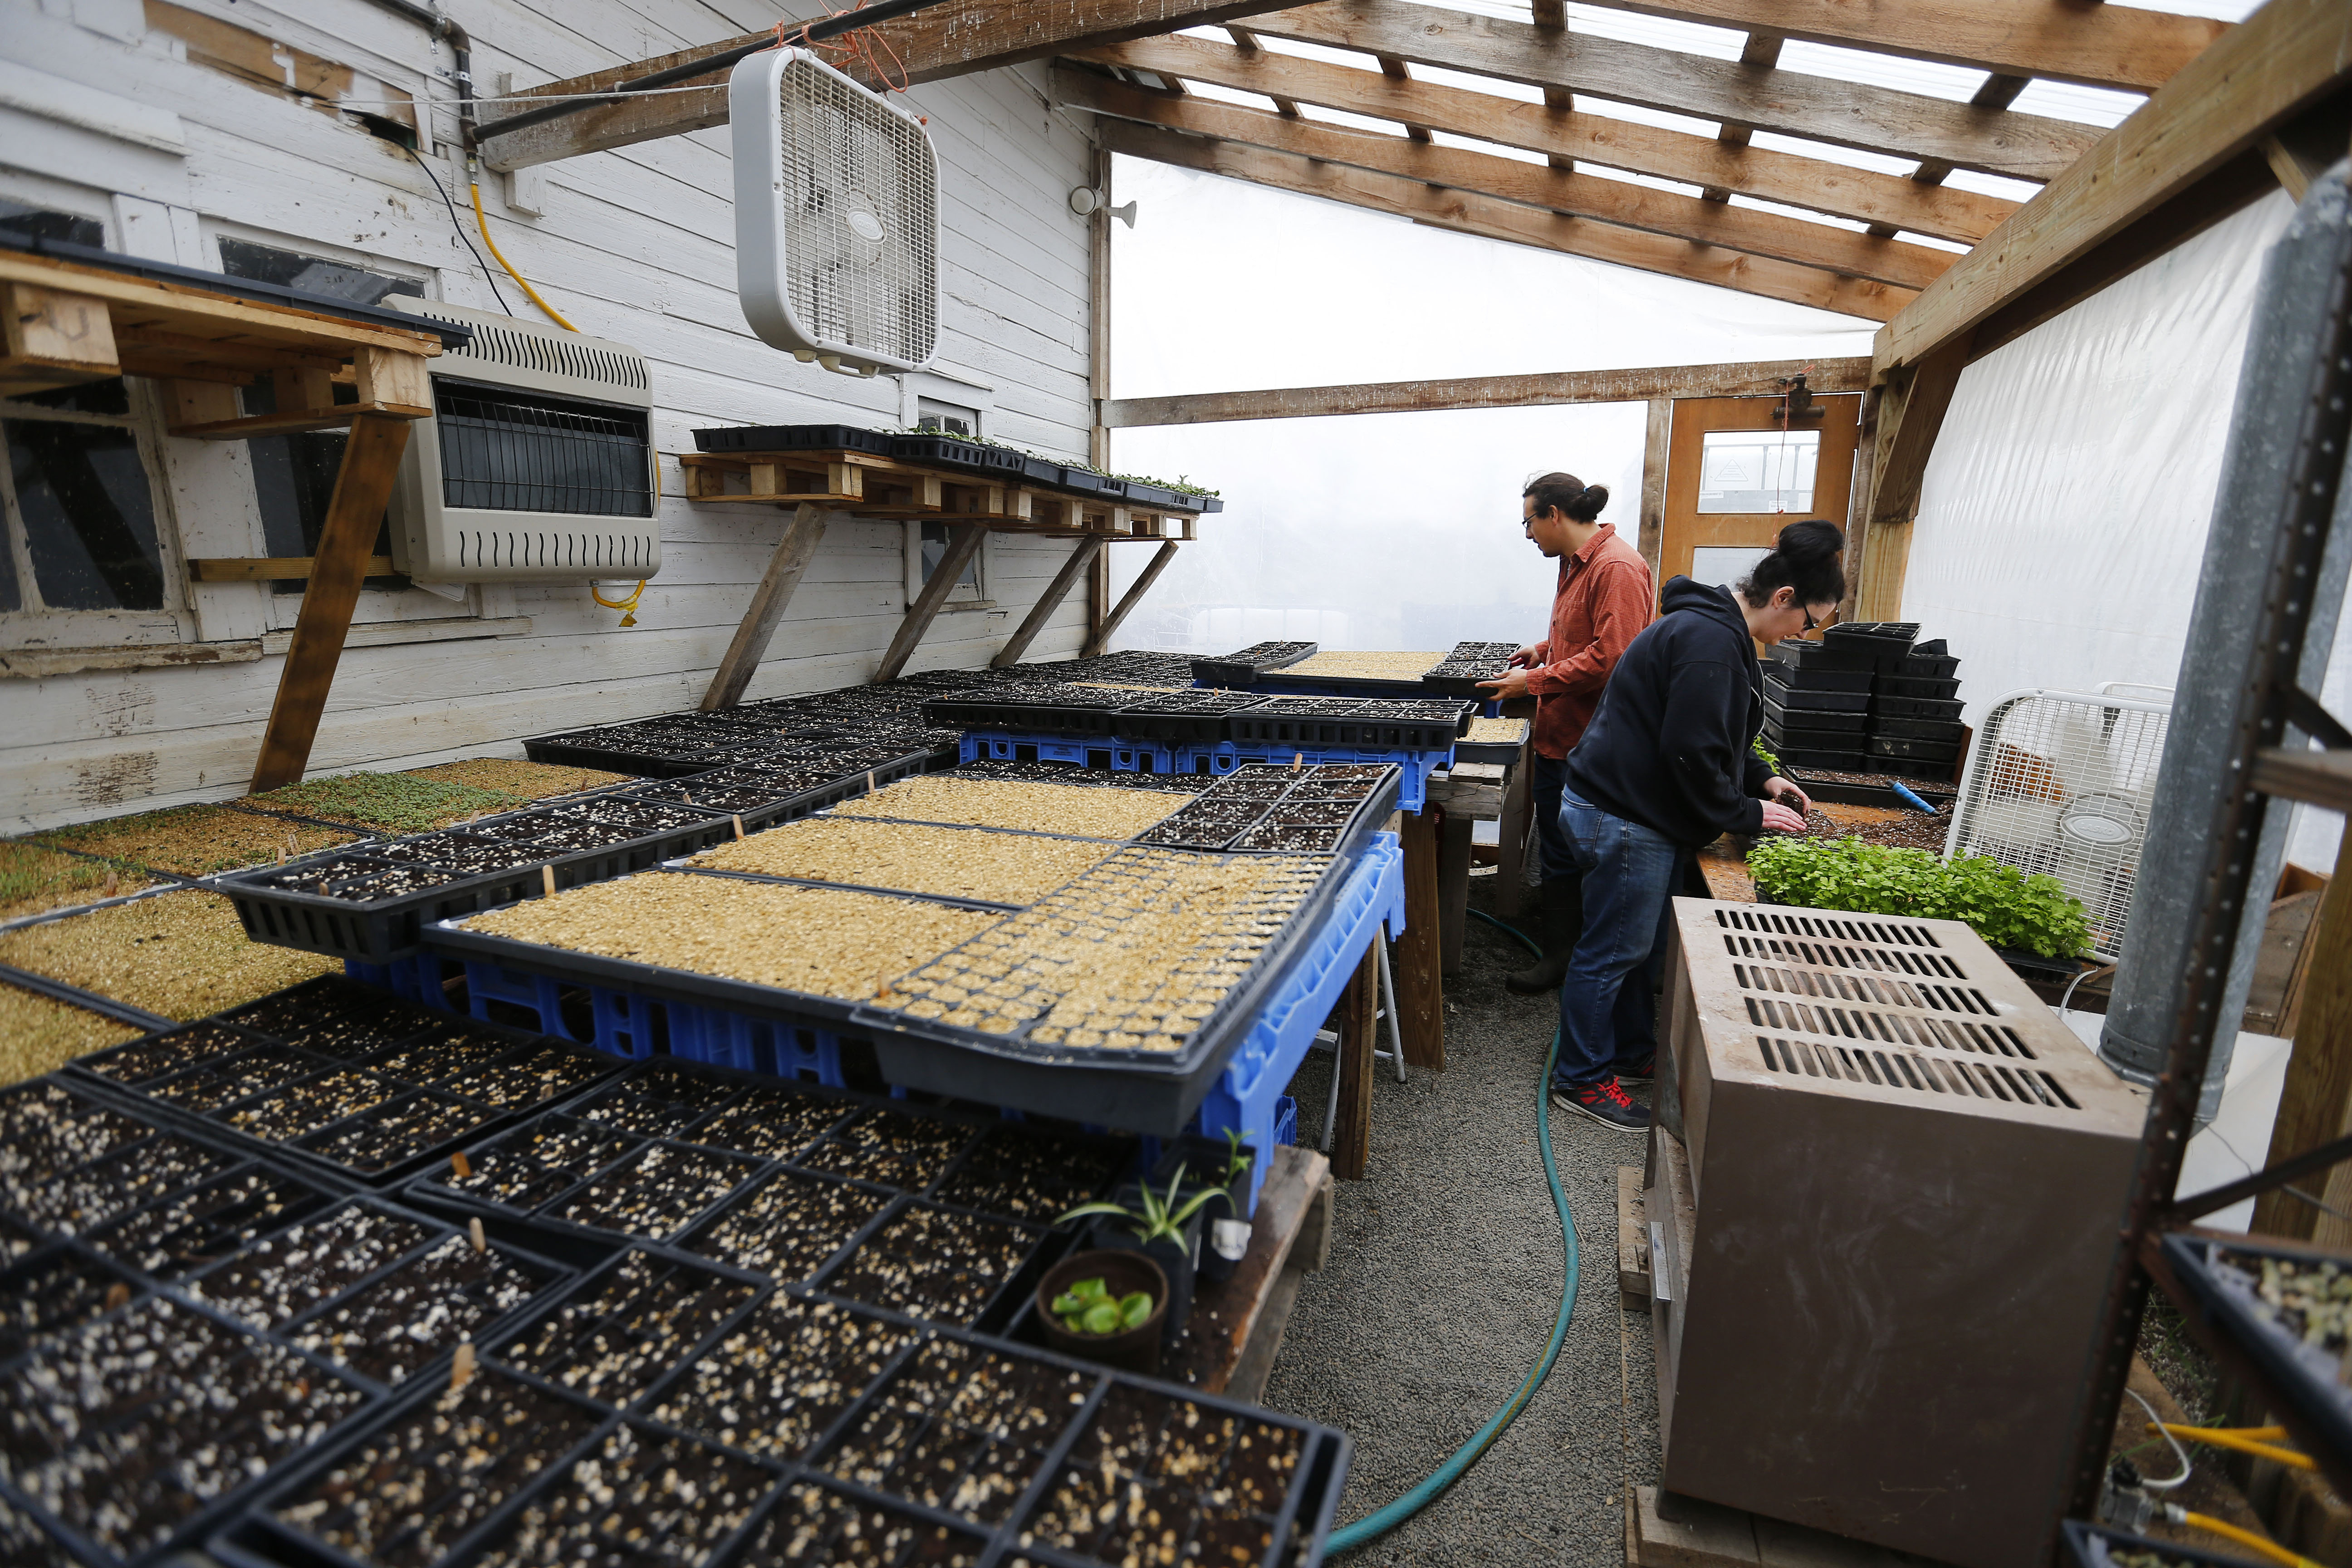 Hemp taking root as farmers embrace 'Mother Nature's perfect